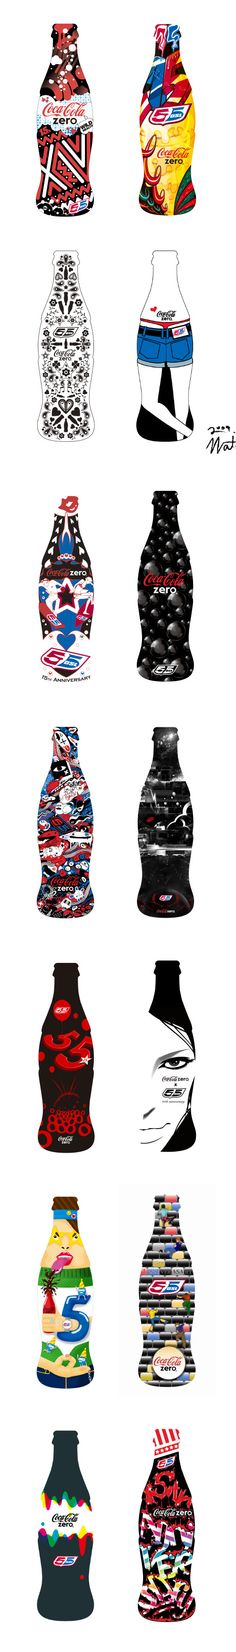 Diesel's 55DSL and Coca-Cola Zero encouraged Japanese designers to create new looks for the limited edition of the contour bottles, dedicated to the 15 Anniversary of the brand PD